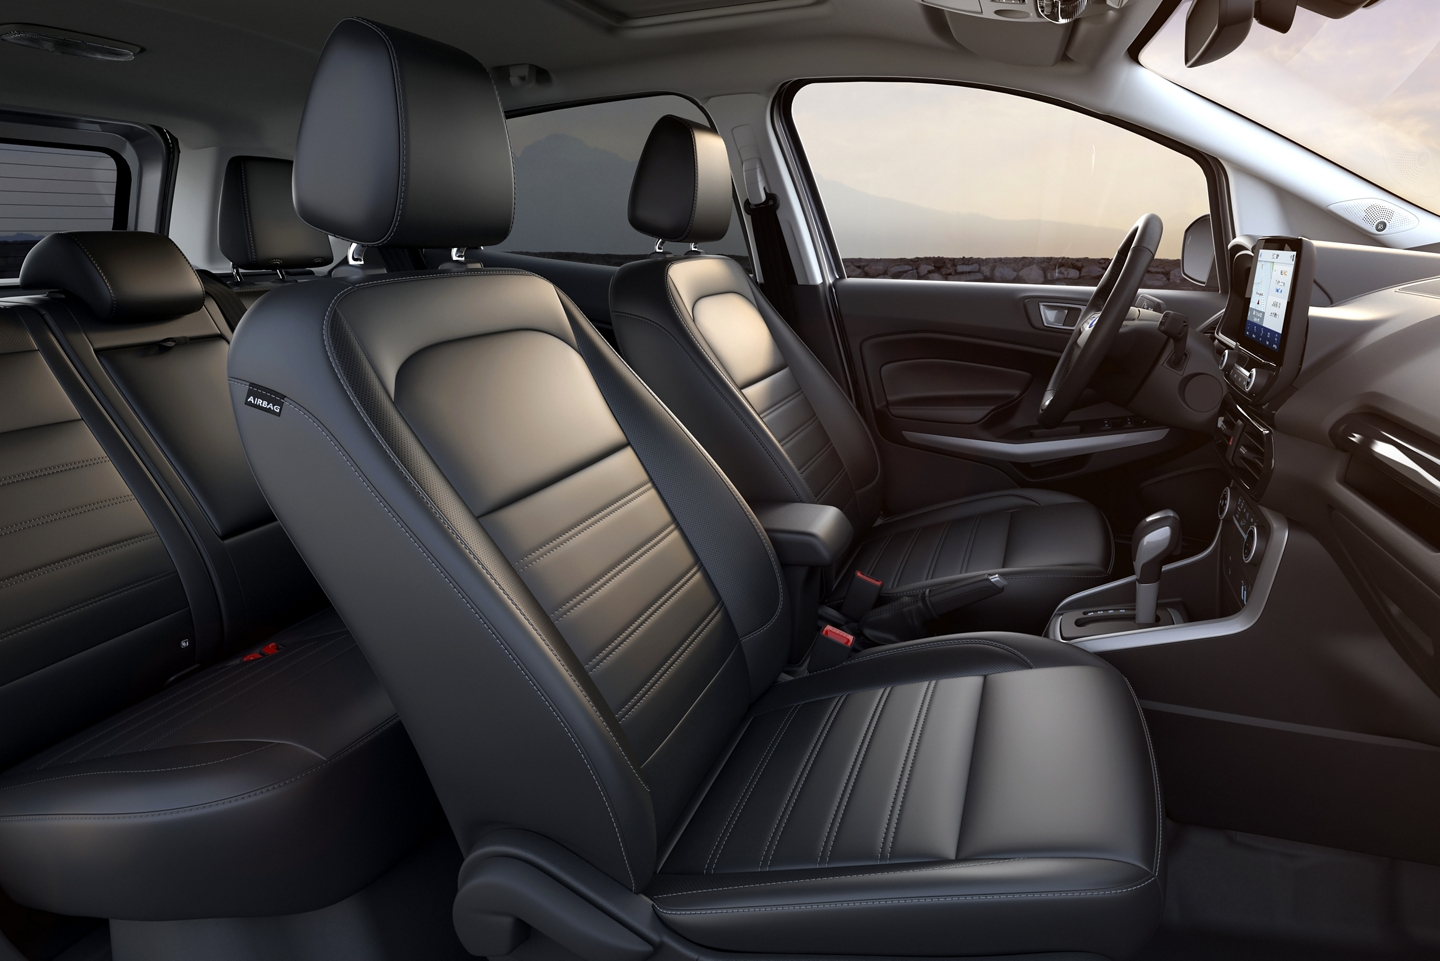 Cabin of the 2020 Ford EcoSport